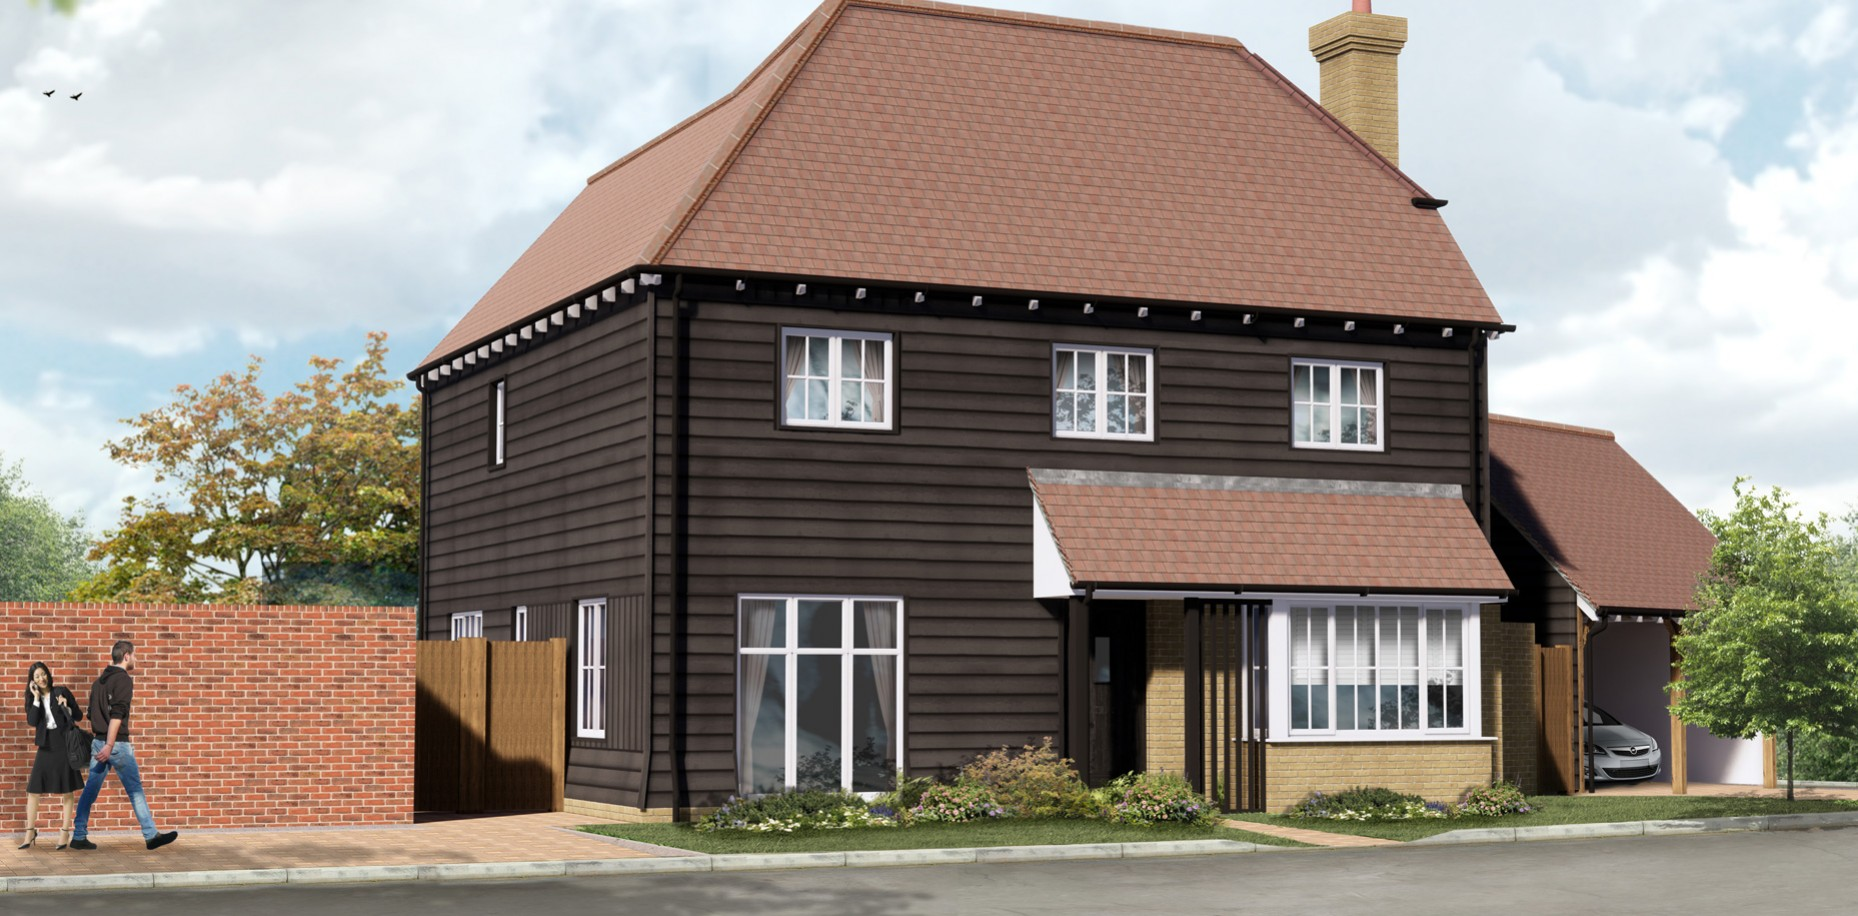 Final homes available at Evabourne, Wouldham. Kent